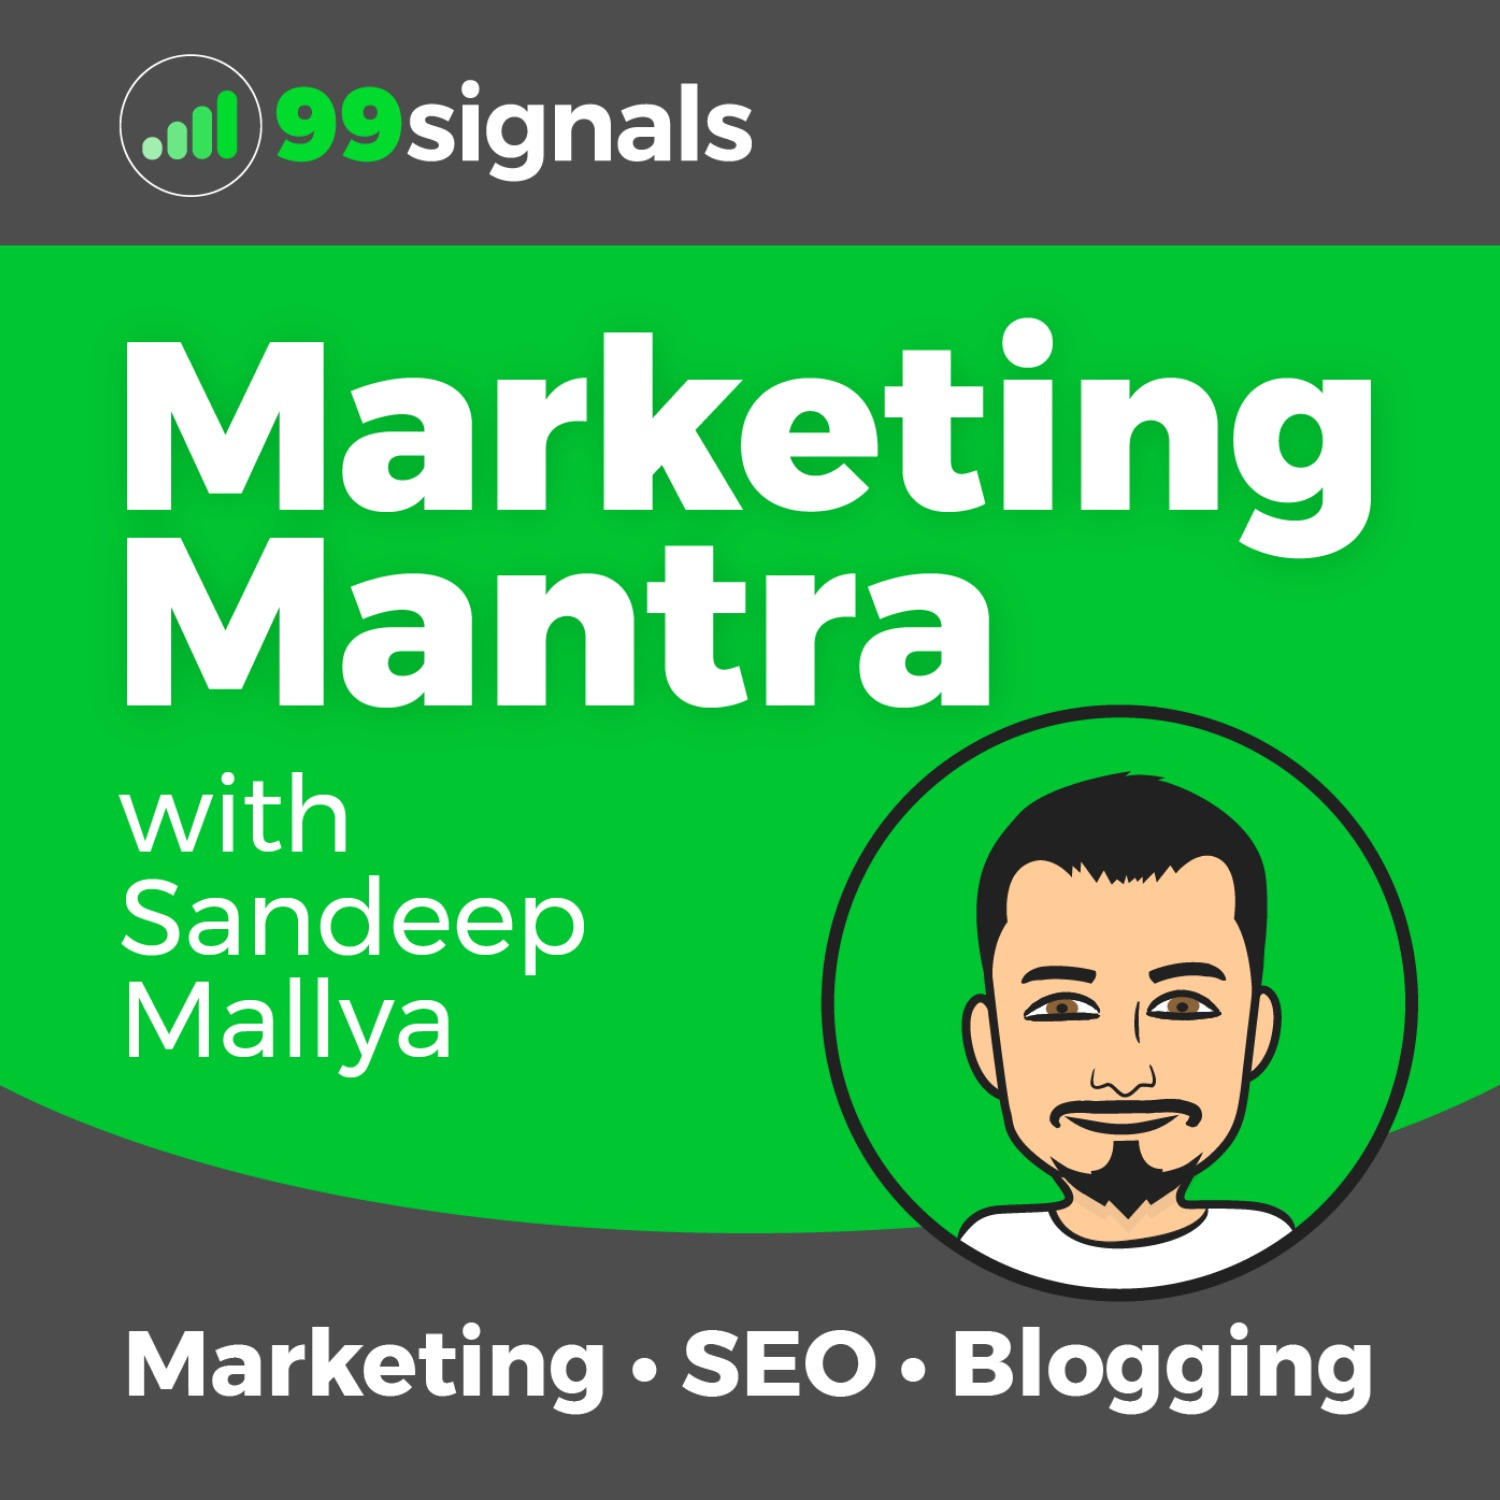 Ep #4: 5 Impressive Marketing Tools You May Not Have Heard Of